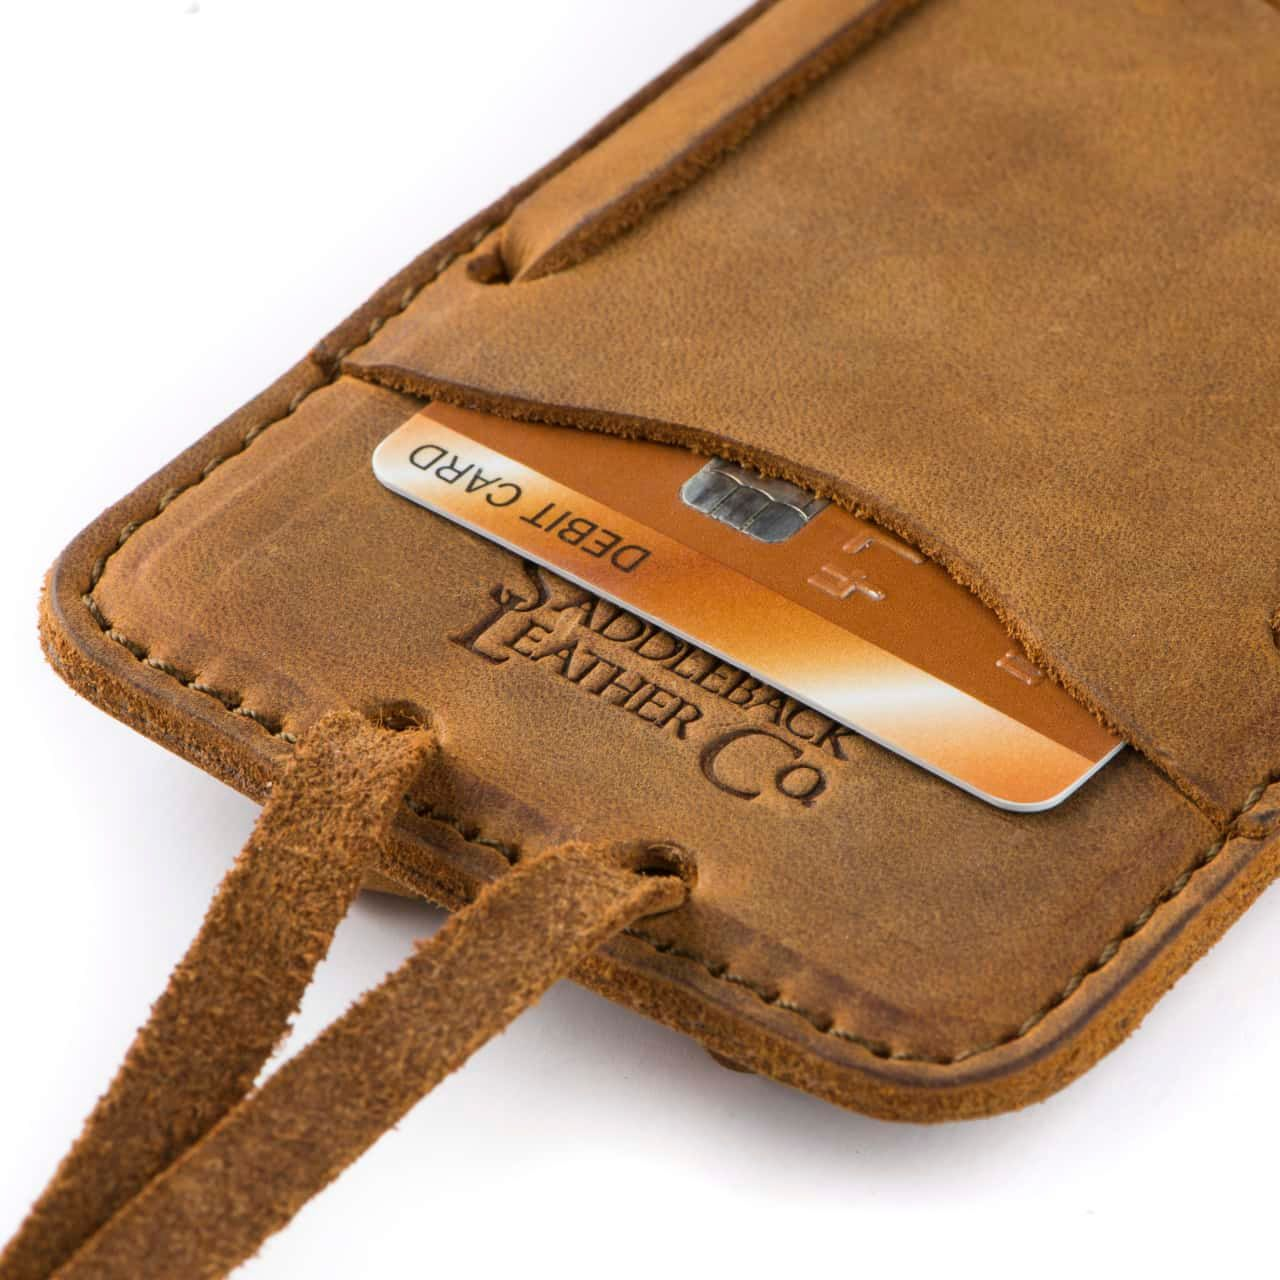 Leather iPhone 8 Case in Color Tobacco Zoomed in on the Saddleback Logo and Card Slot with a Card